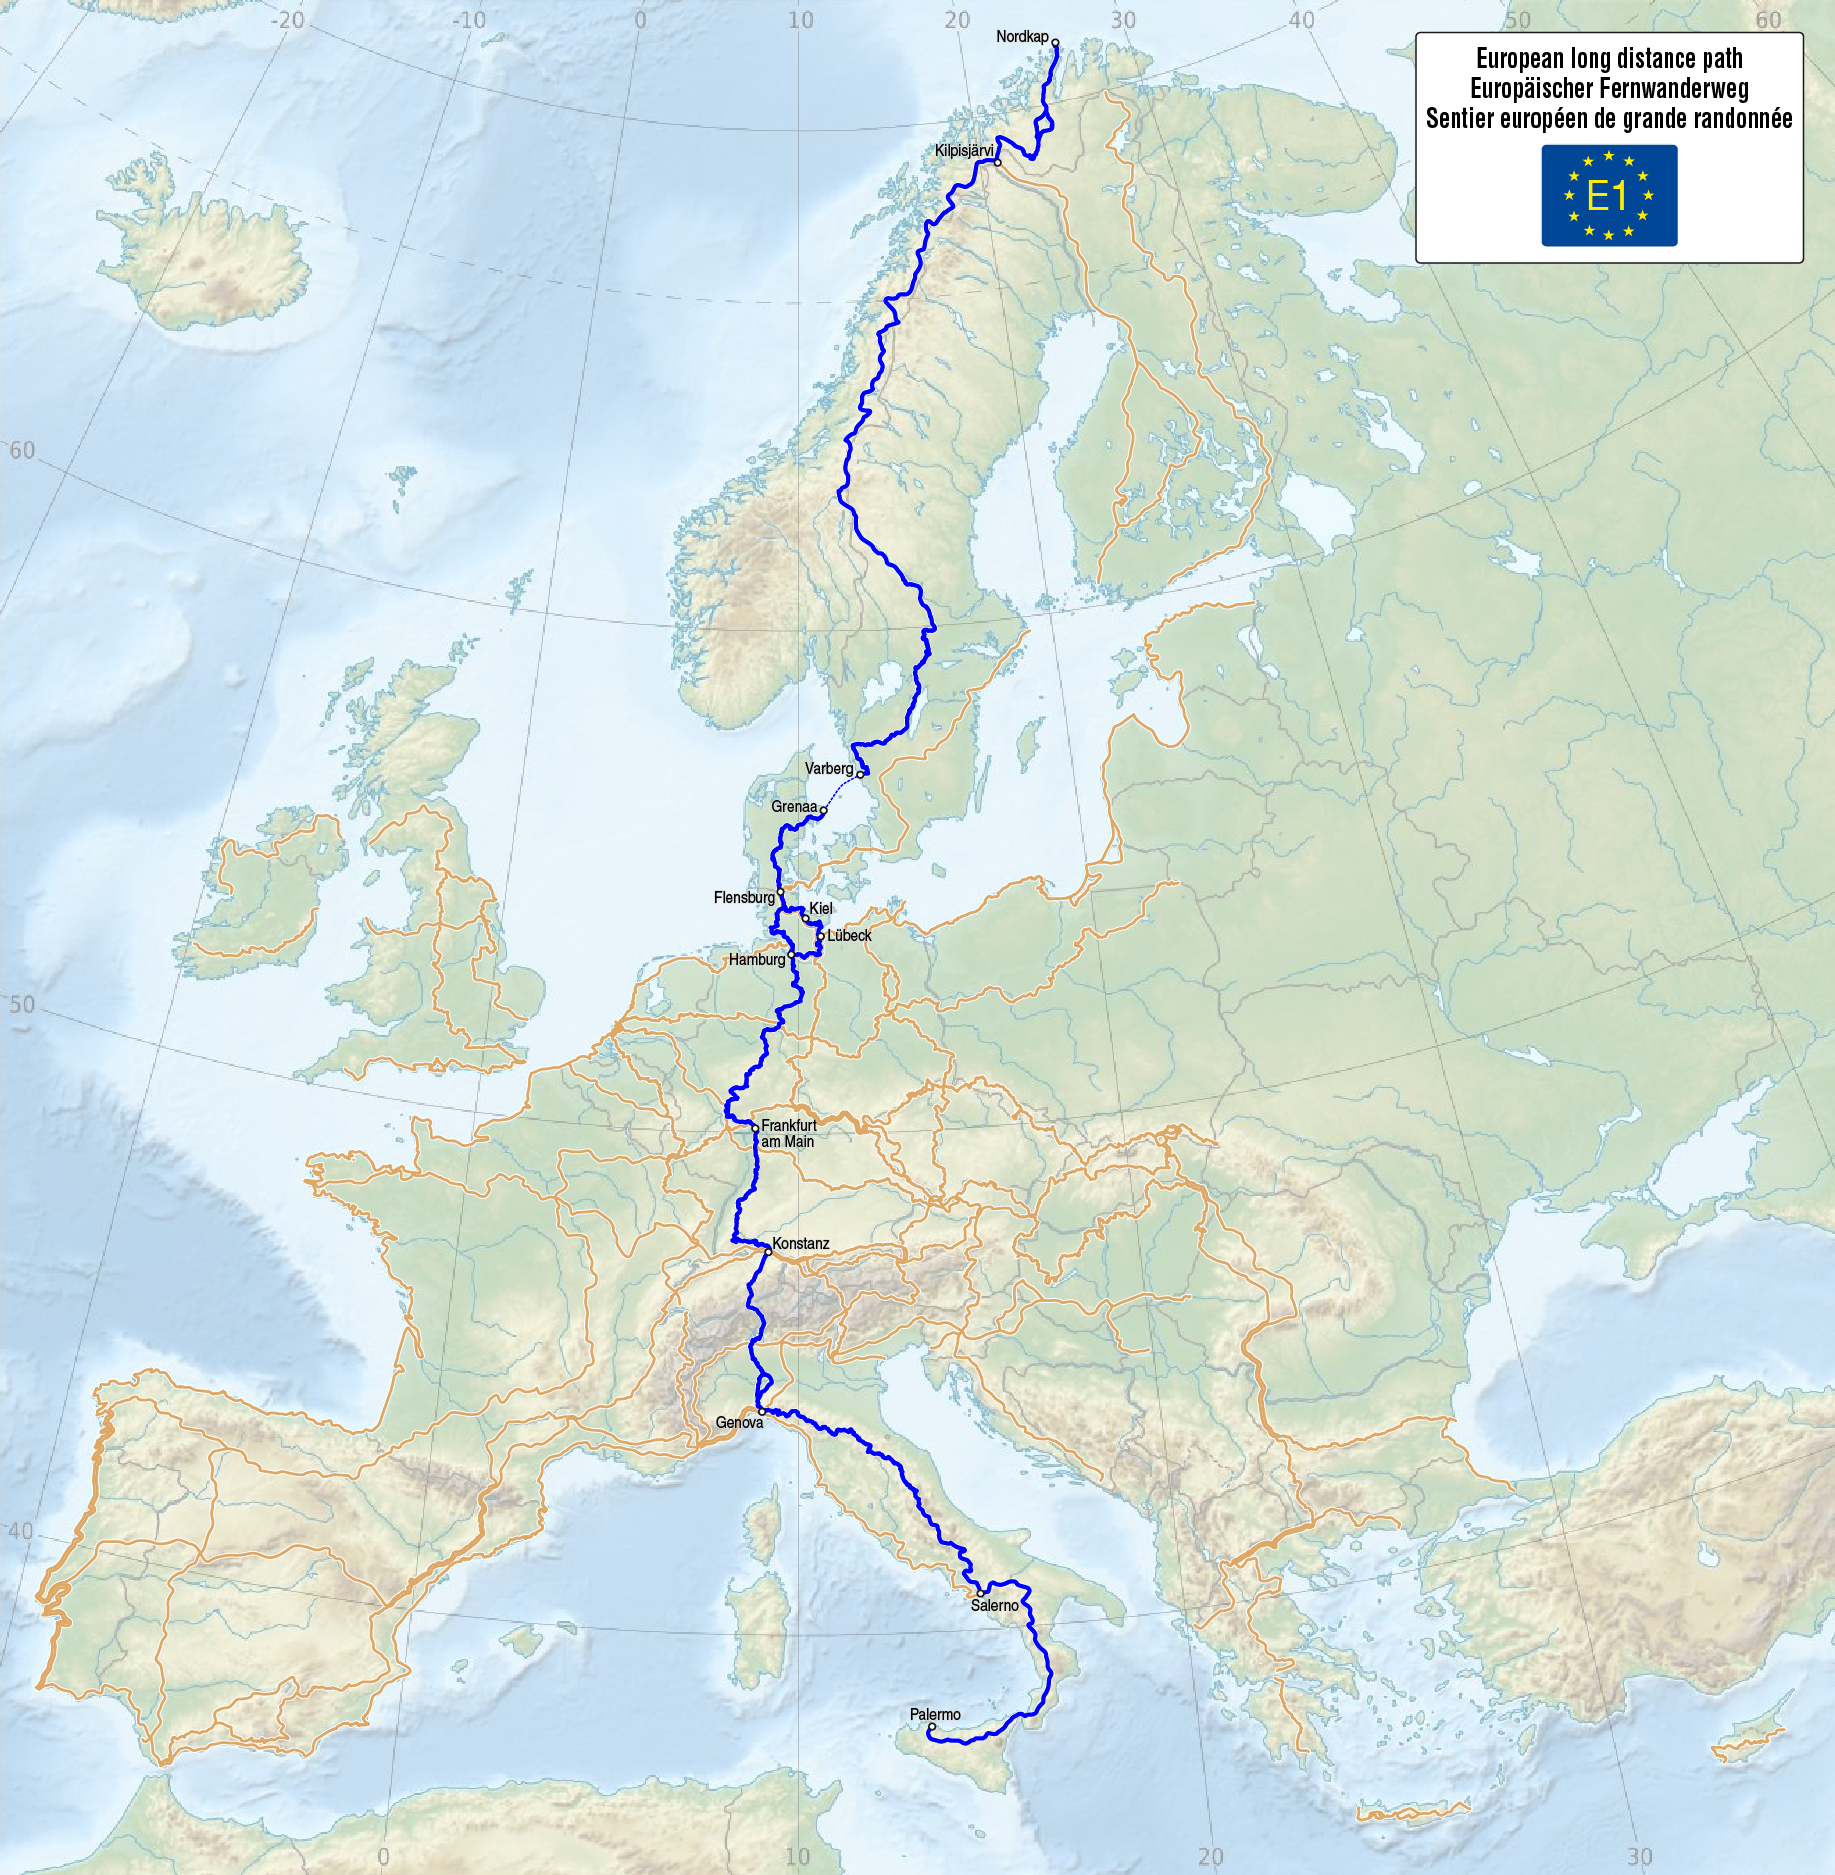 e1 european long distance path - wikipedia